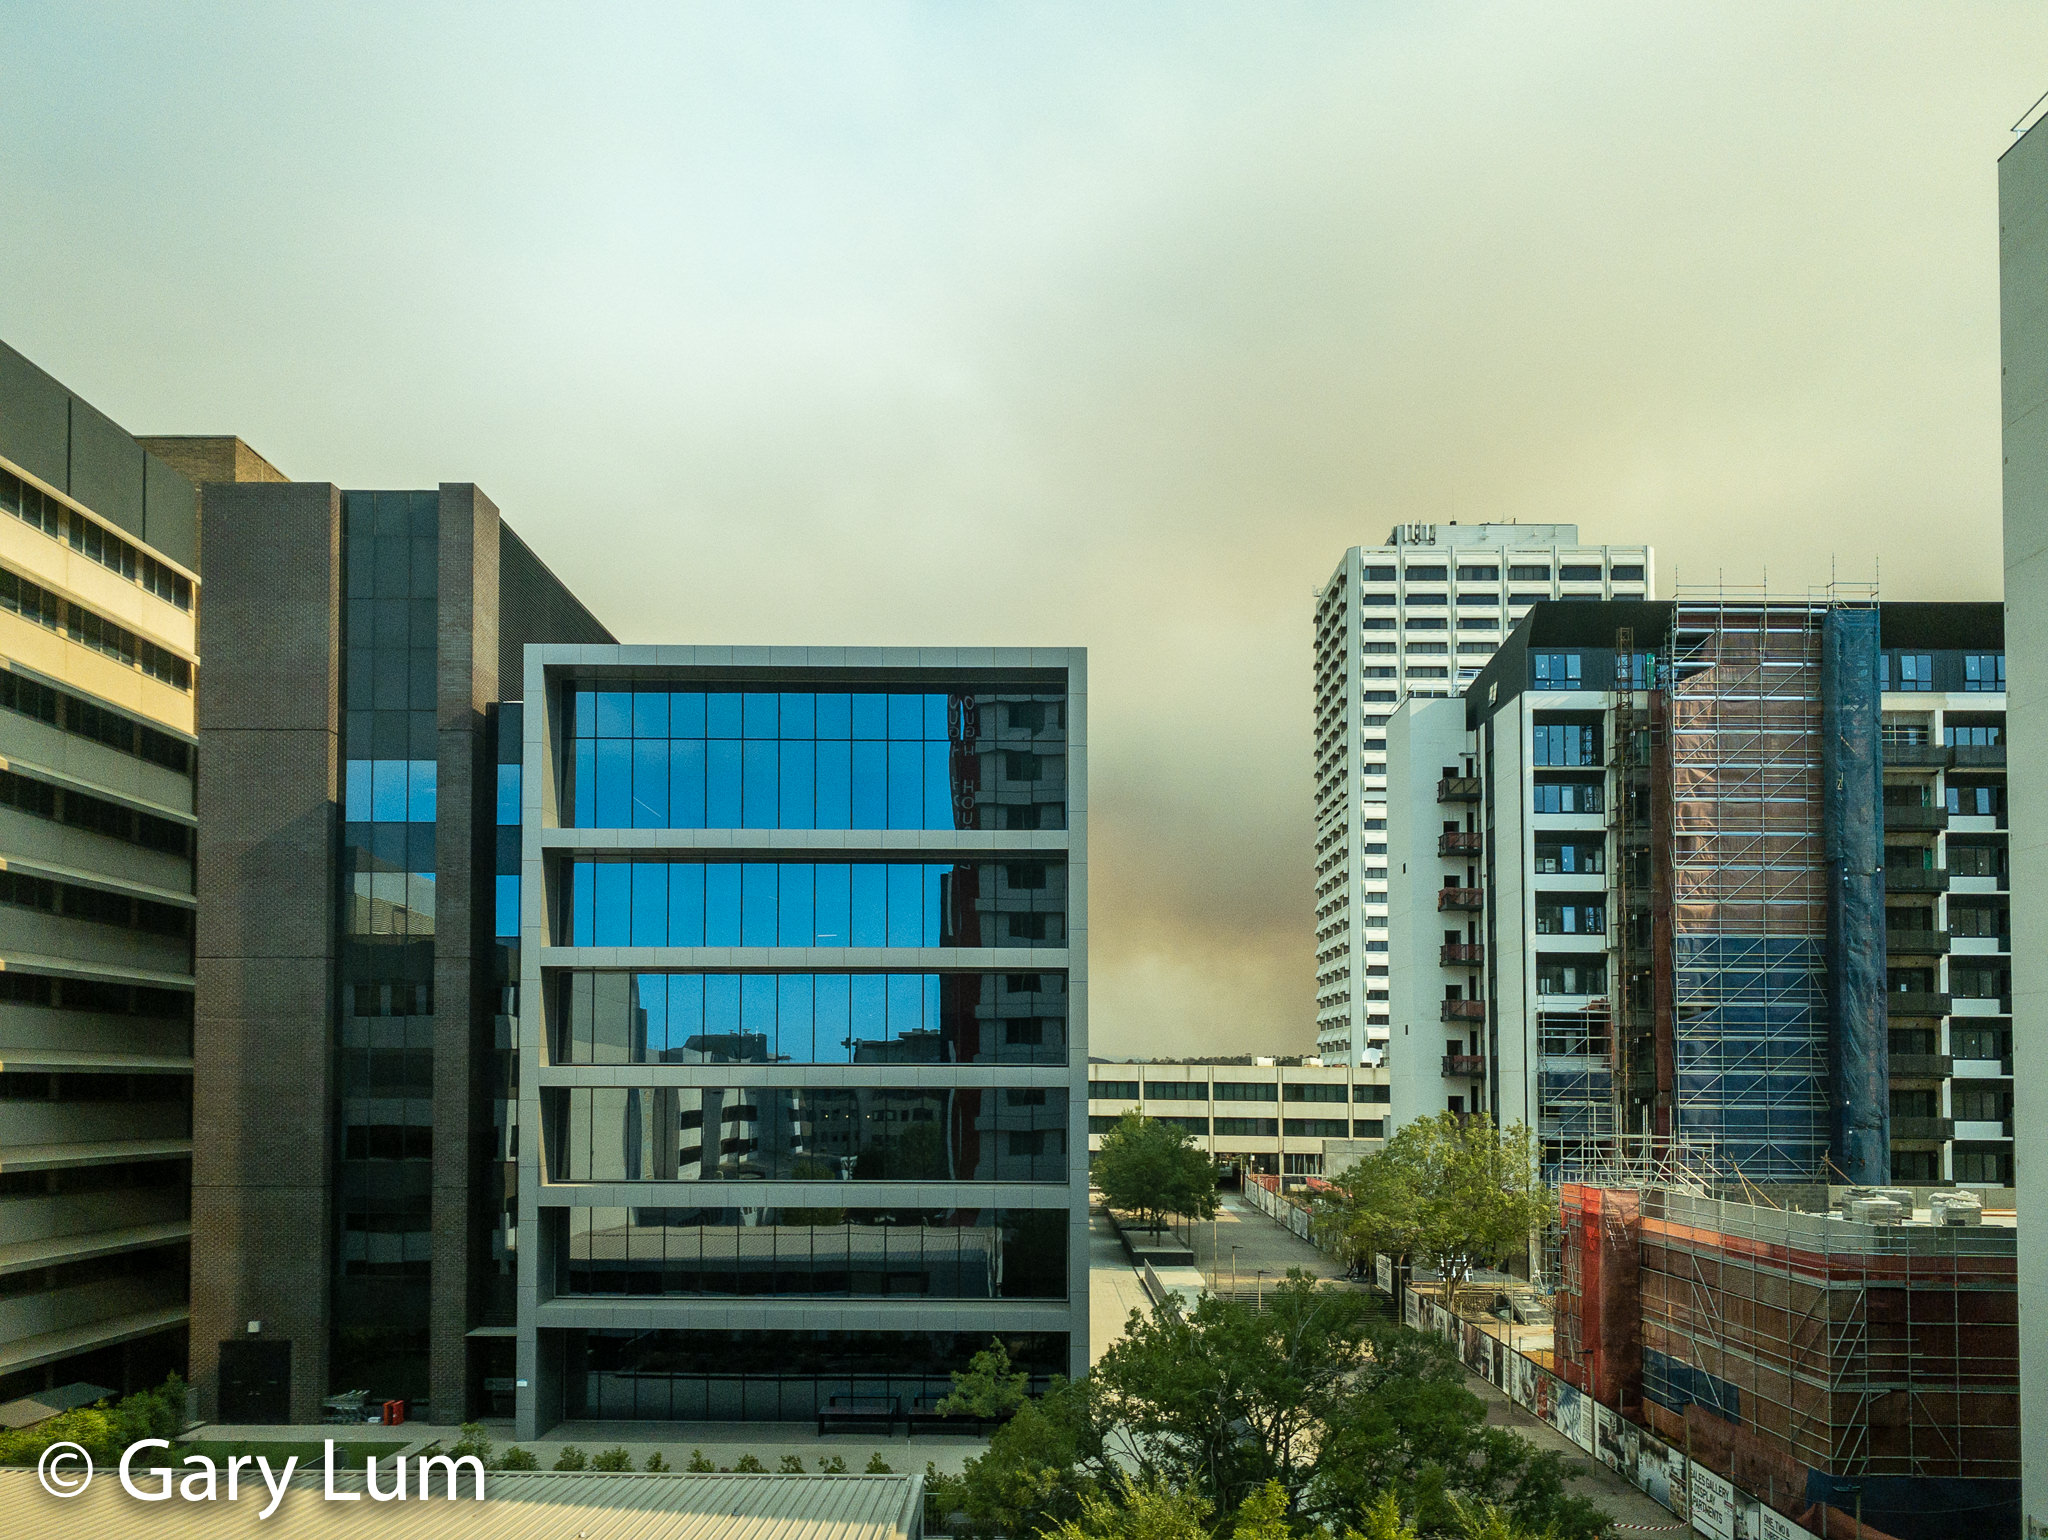 View from a window at work. Welcome to Canberra, the world's most liveable city. #bushfires #smokehaze